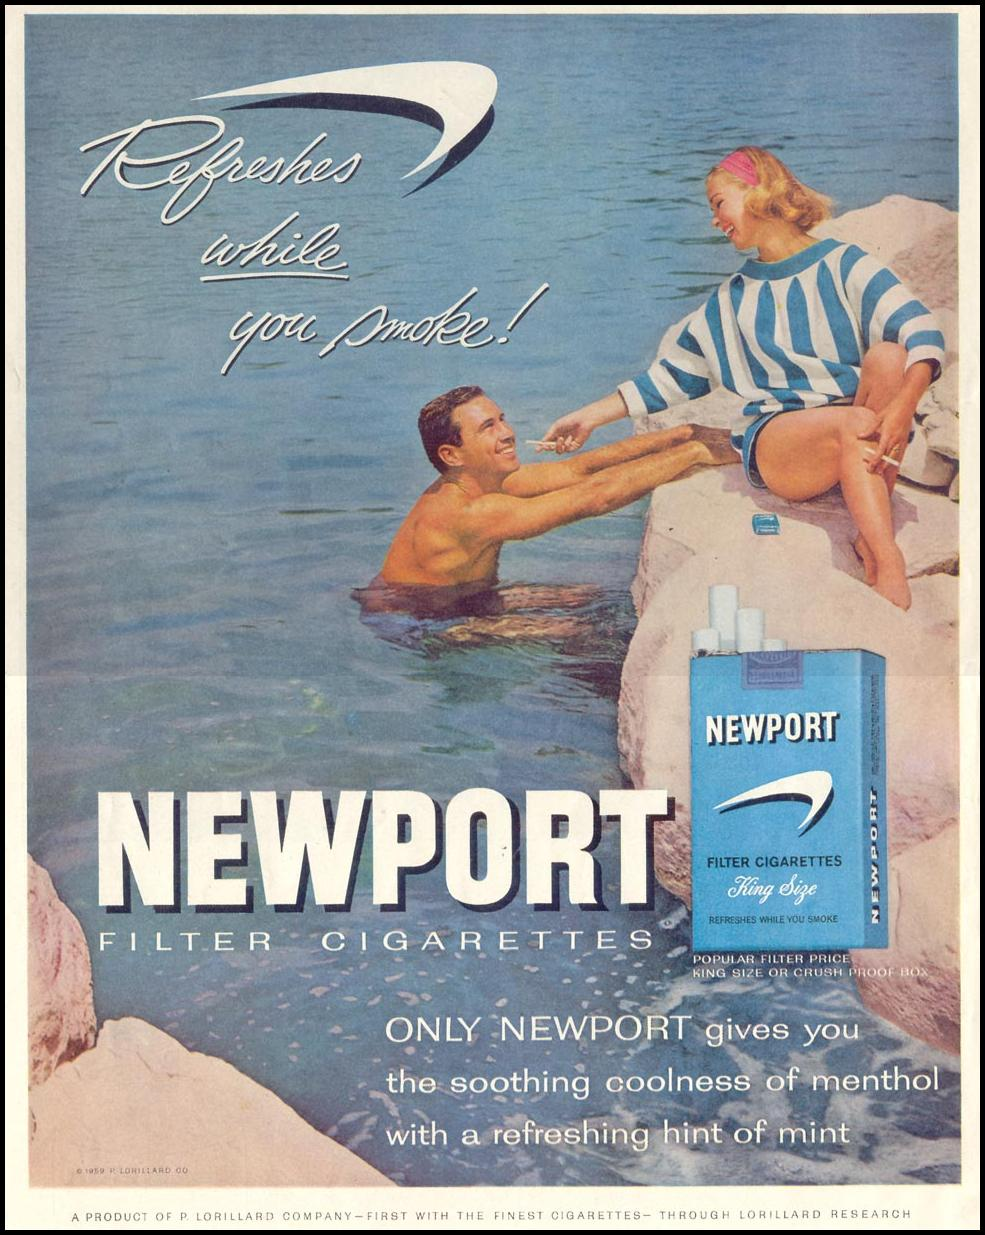 NEWPORT CIGARETTES SATURDAY EVENING POST 08/15/1959